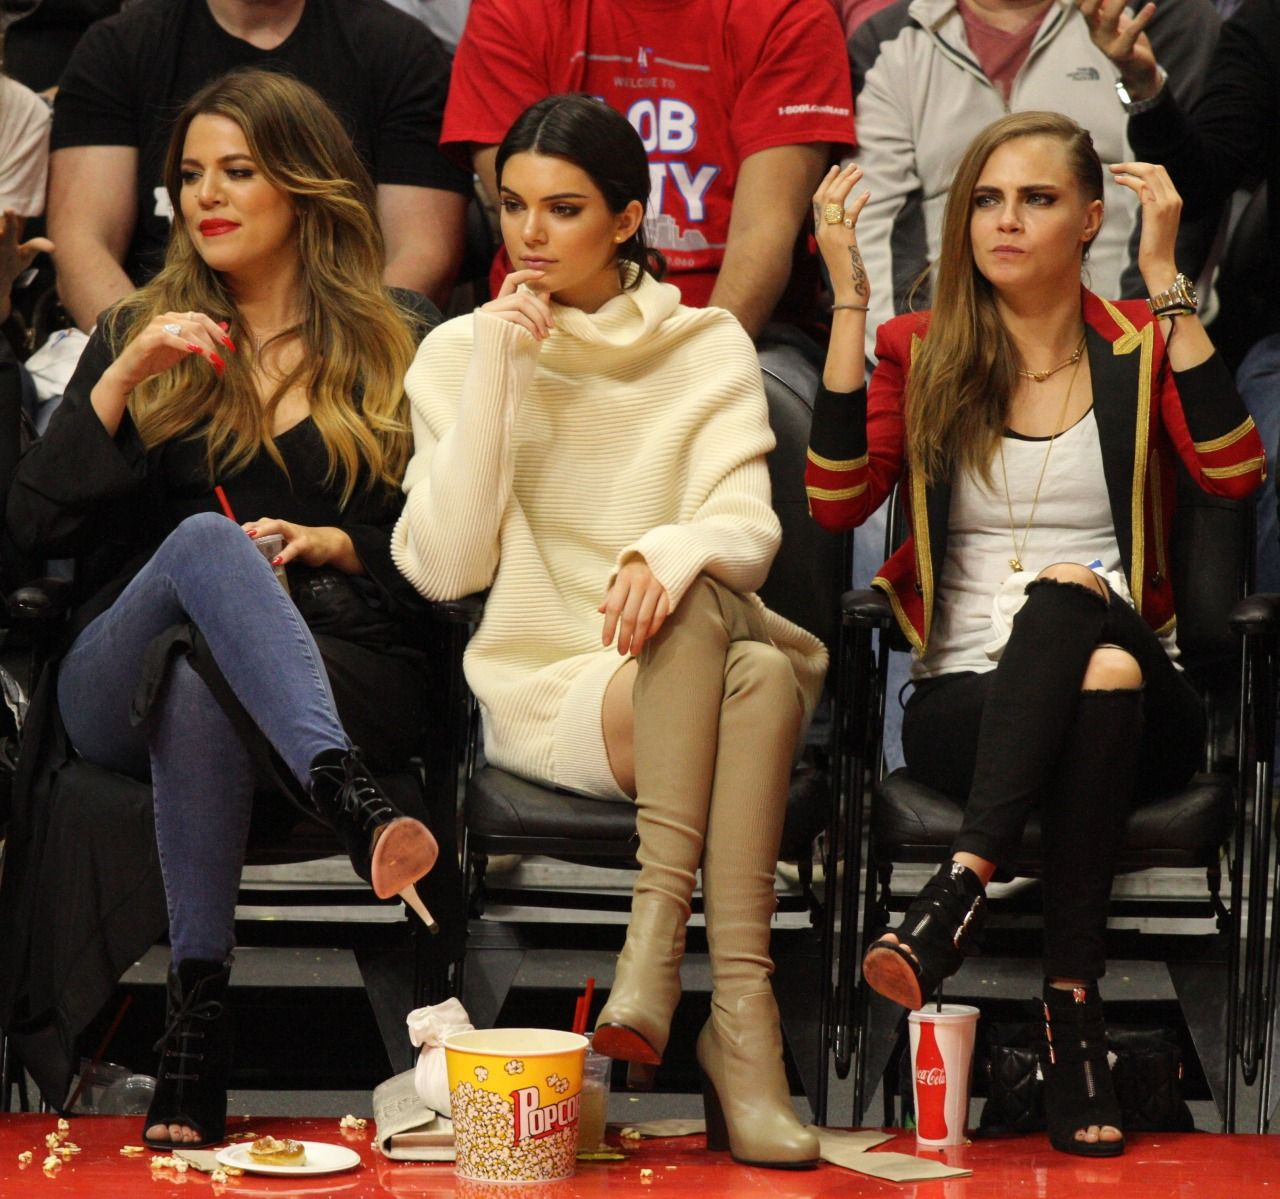 cara-delevingne-kendall-jenner-and-khloe-kardashian-at-a-lakers-game-in-los-angeles-jan.-2015_1